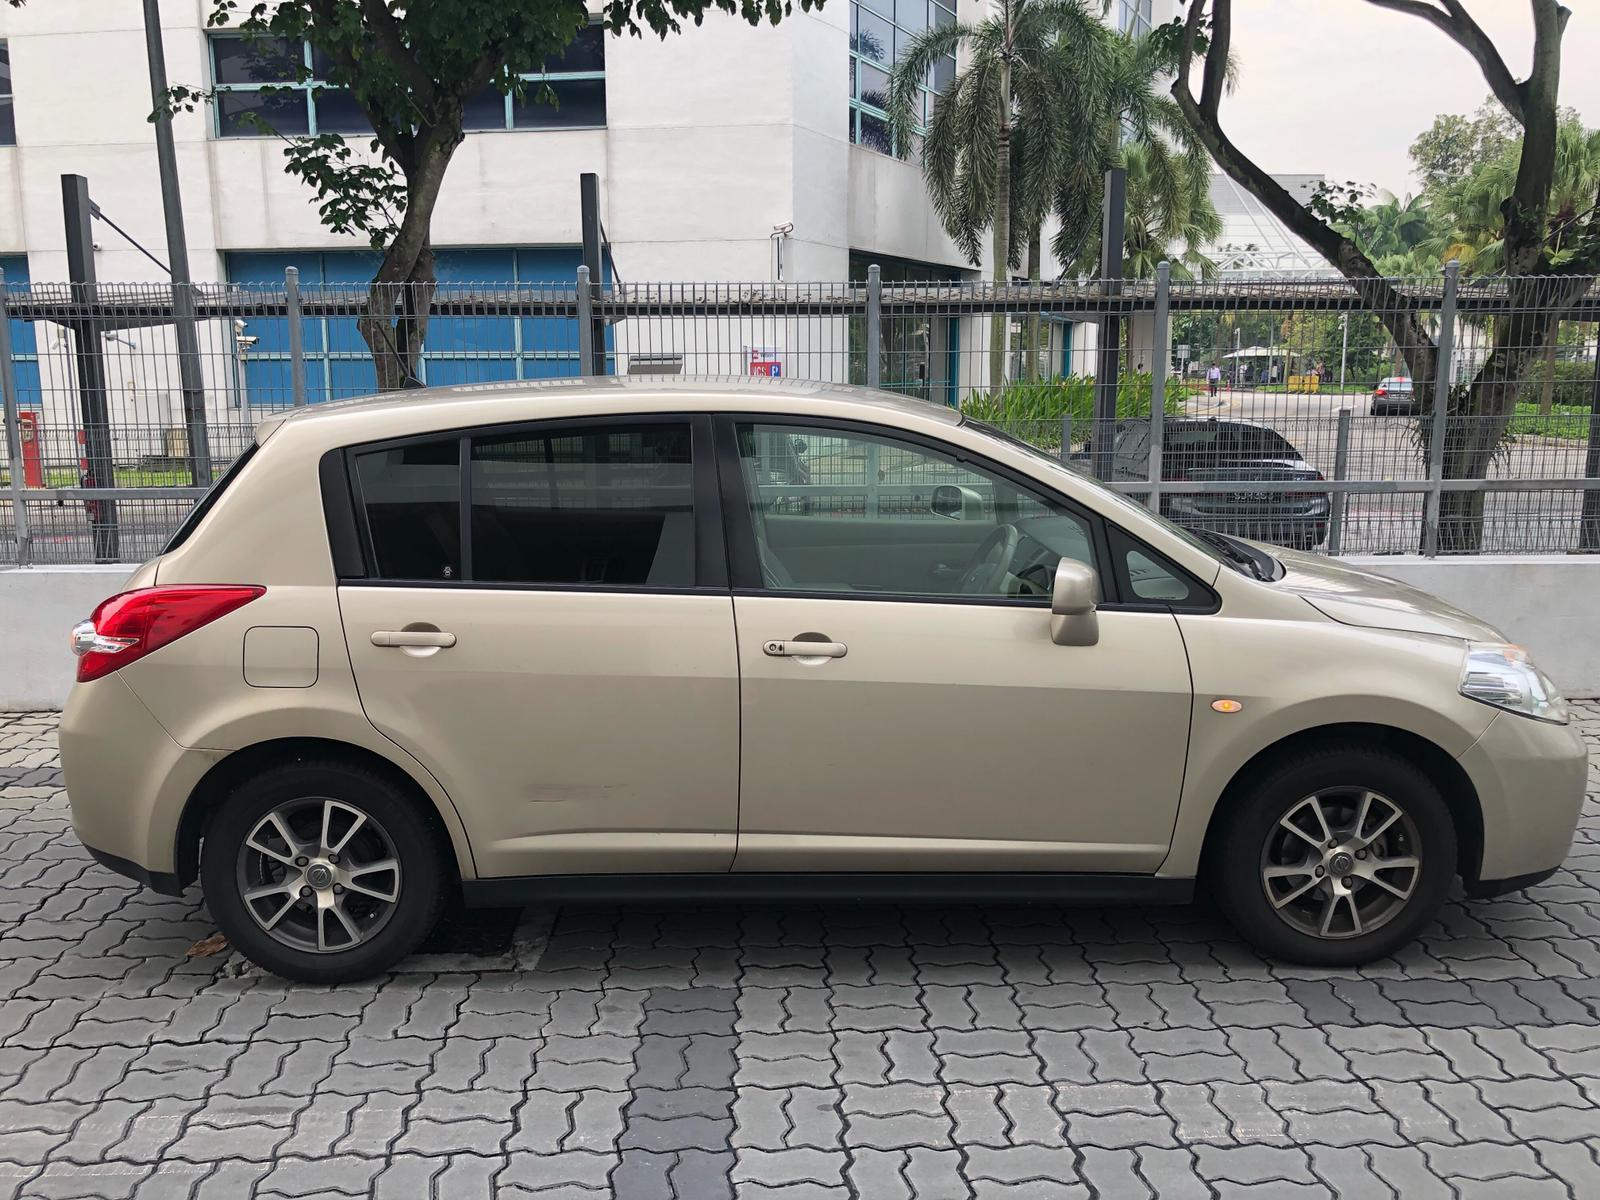 Nissan Latio 1.5a*good condition*40k mileage car .incentive rebate For Rent for grab Rental Gojek Or Personal Use Low price and Cheap